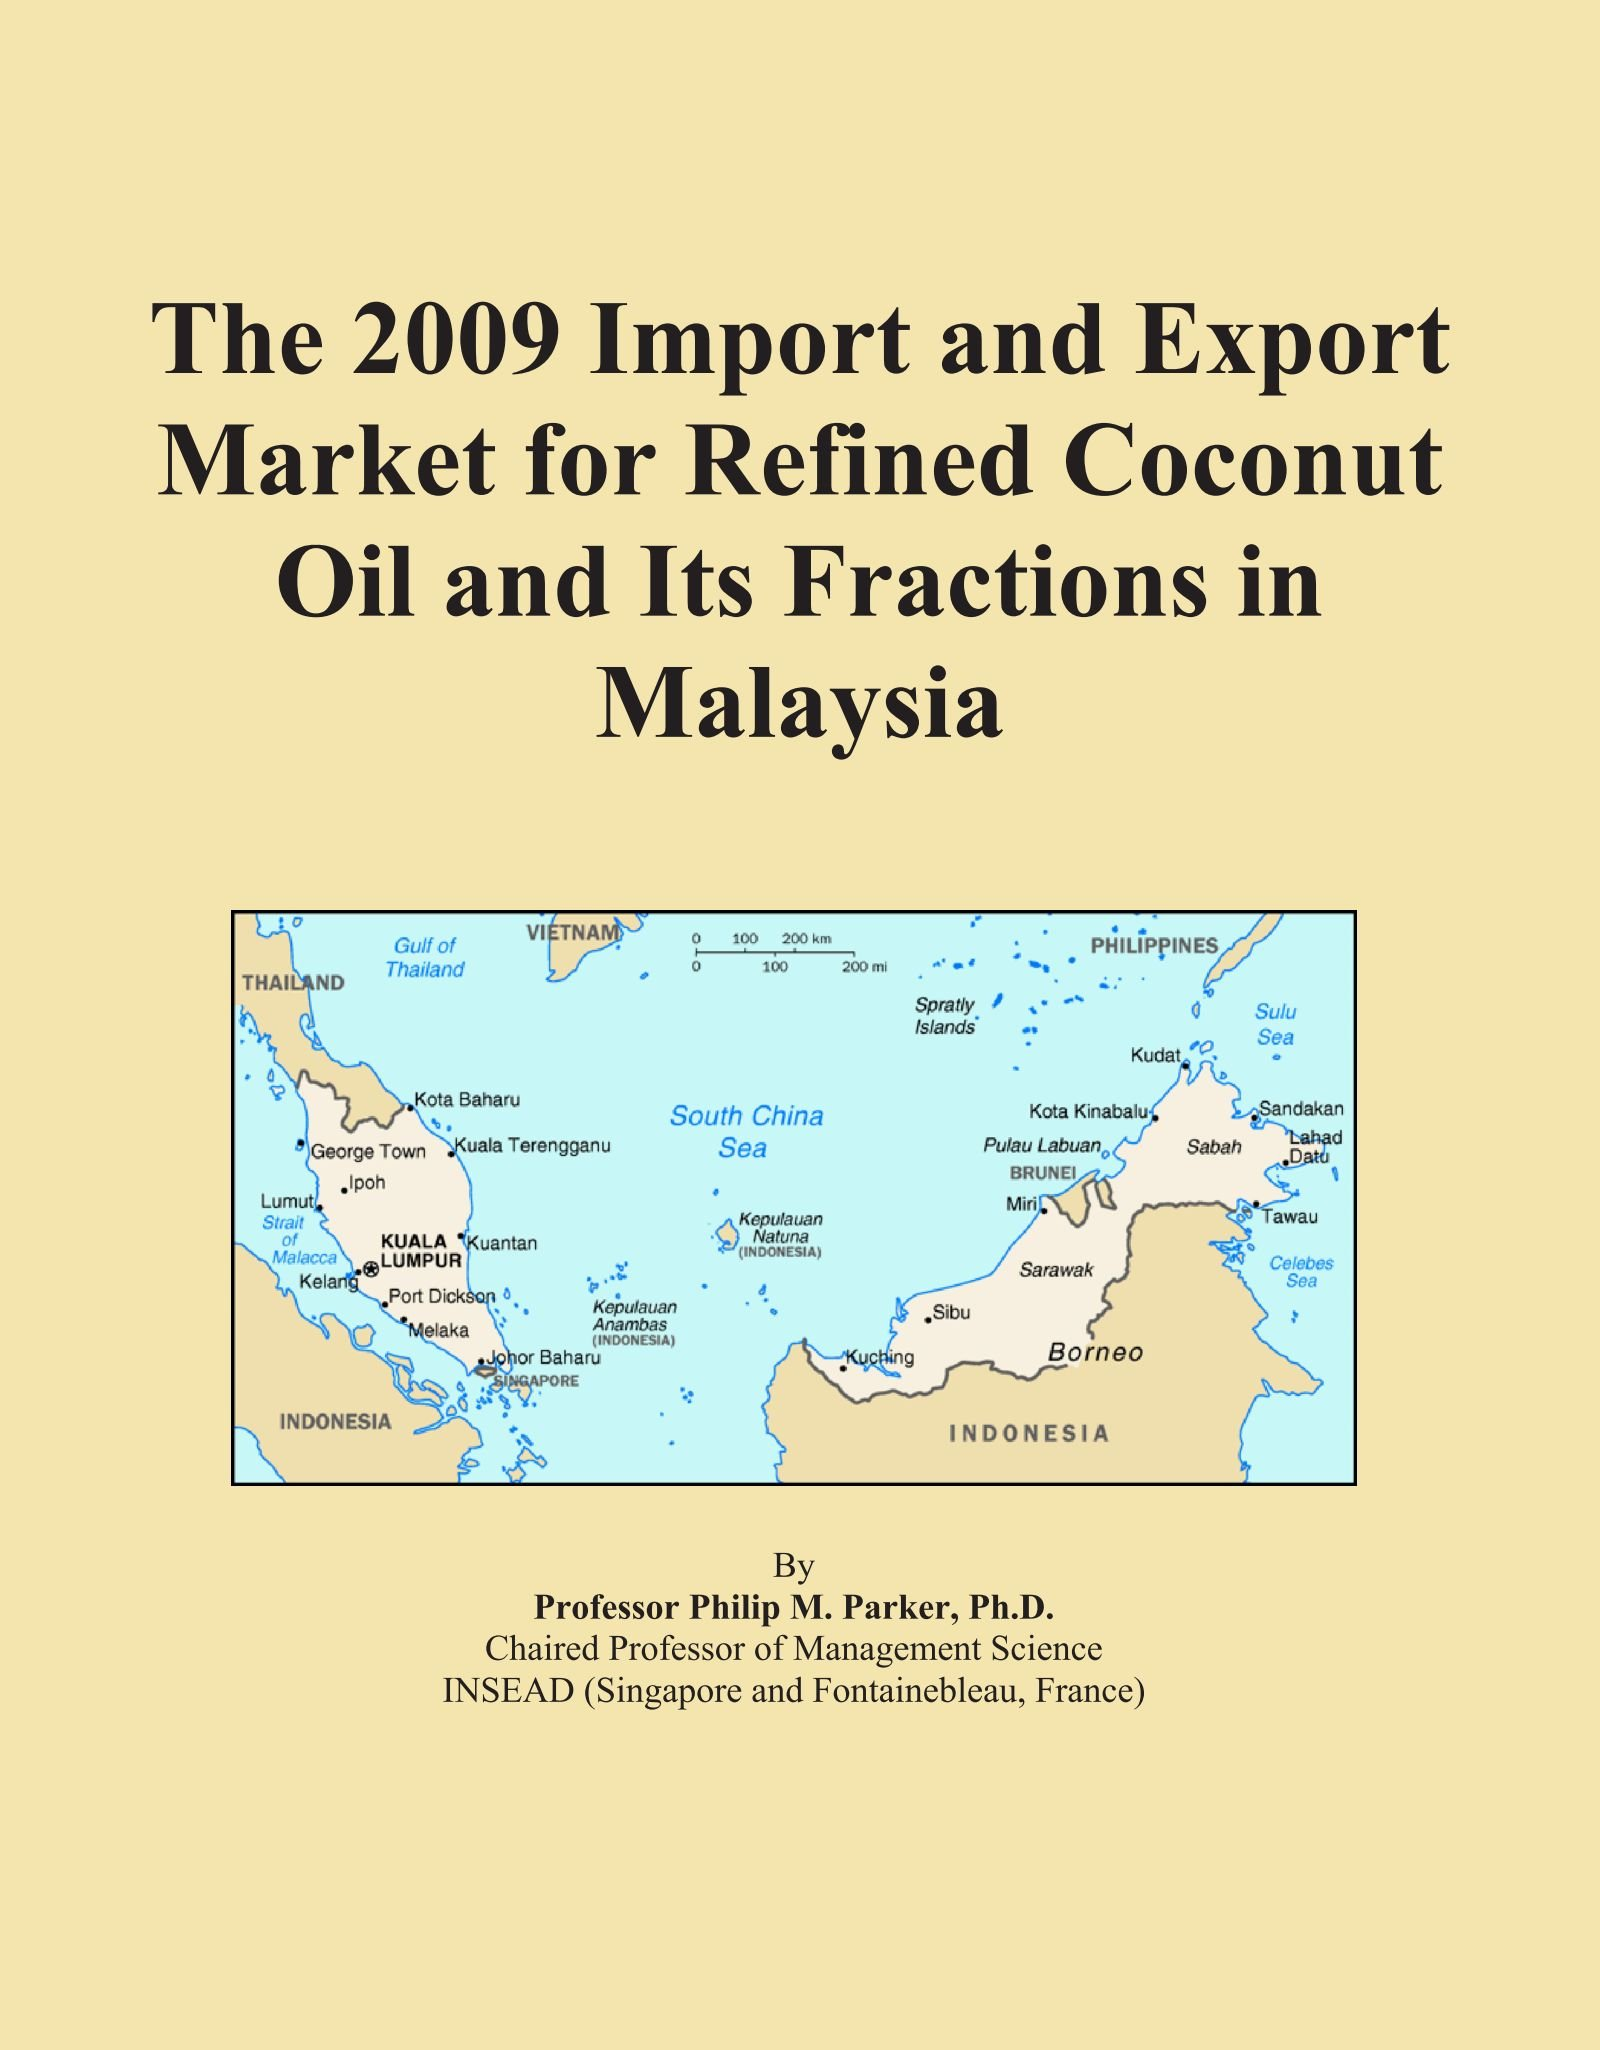 The 2009 Import and Export Market for Refined Coconut Oil and Its Fractions in Malaysia pdf